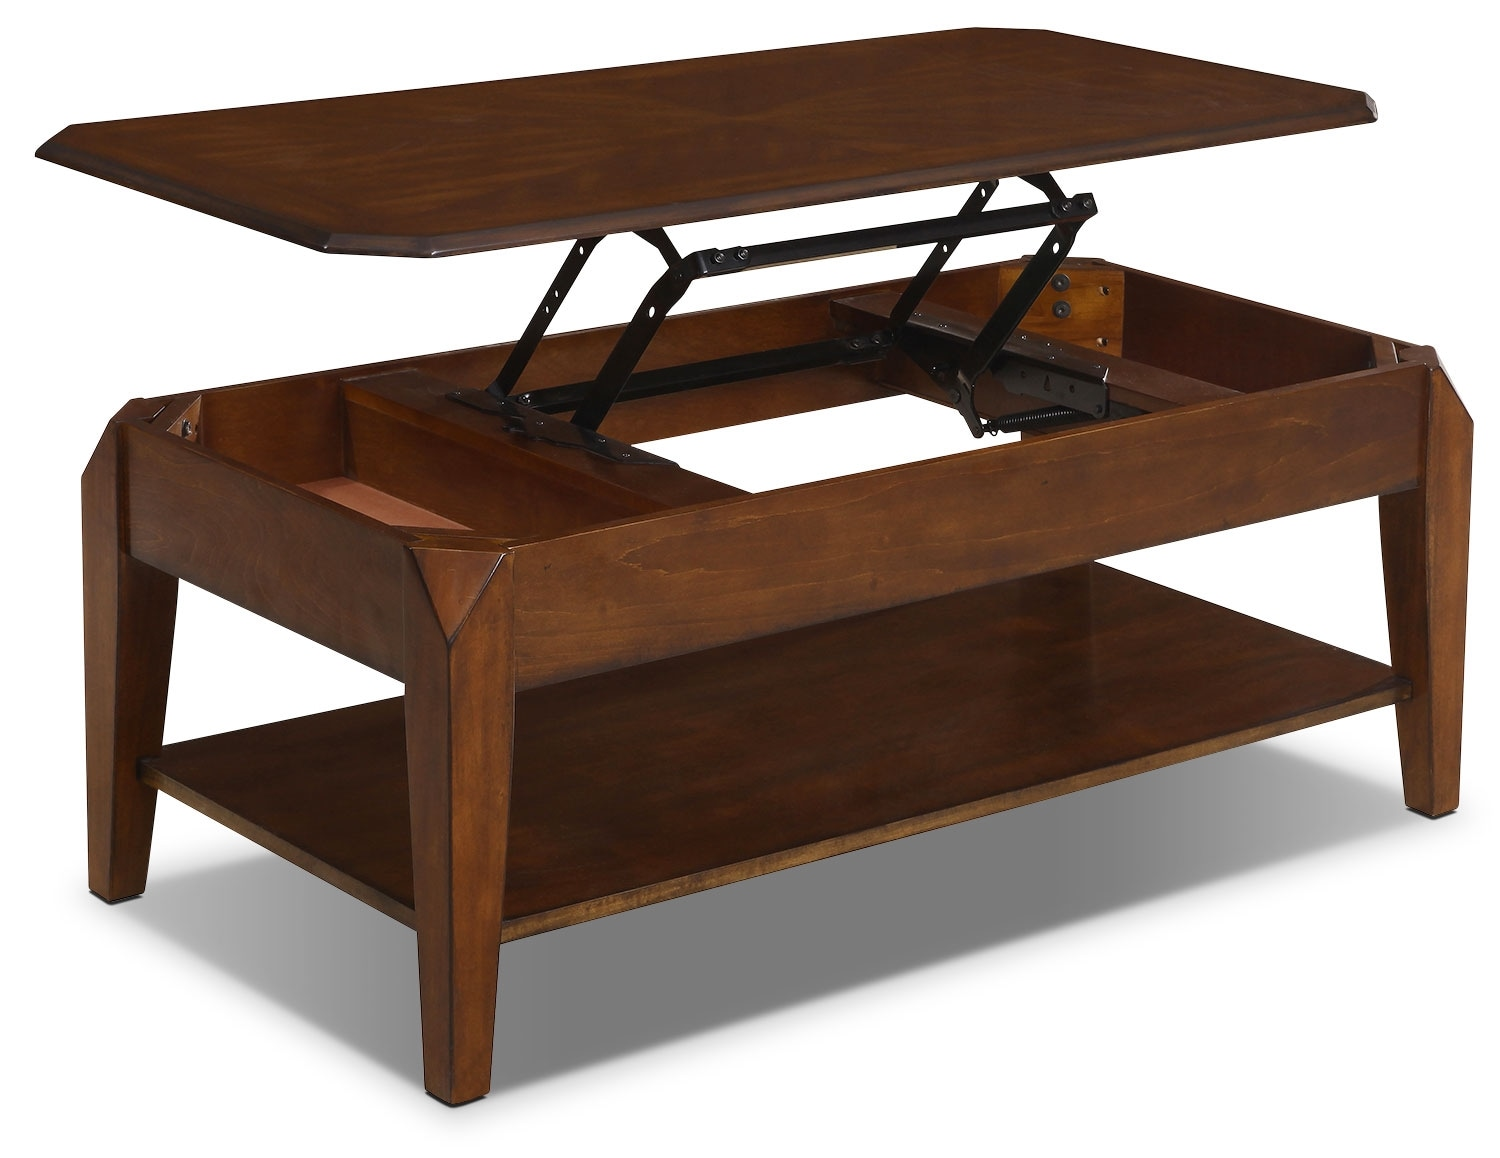 Duntara Coffee Table with Lift-Top